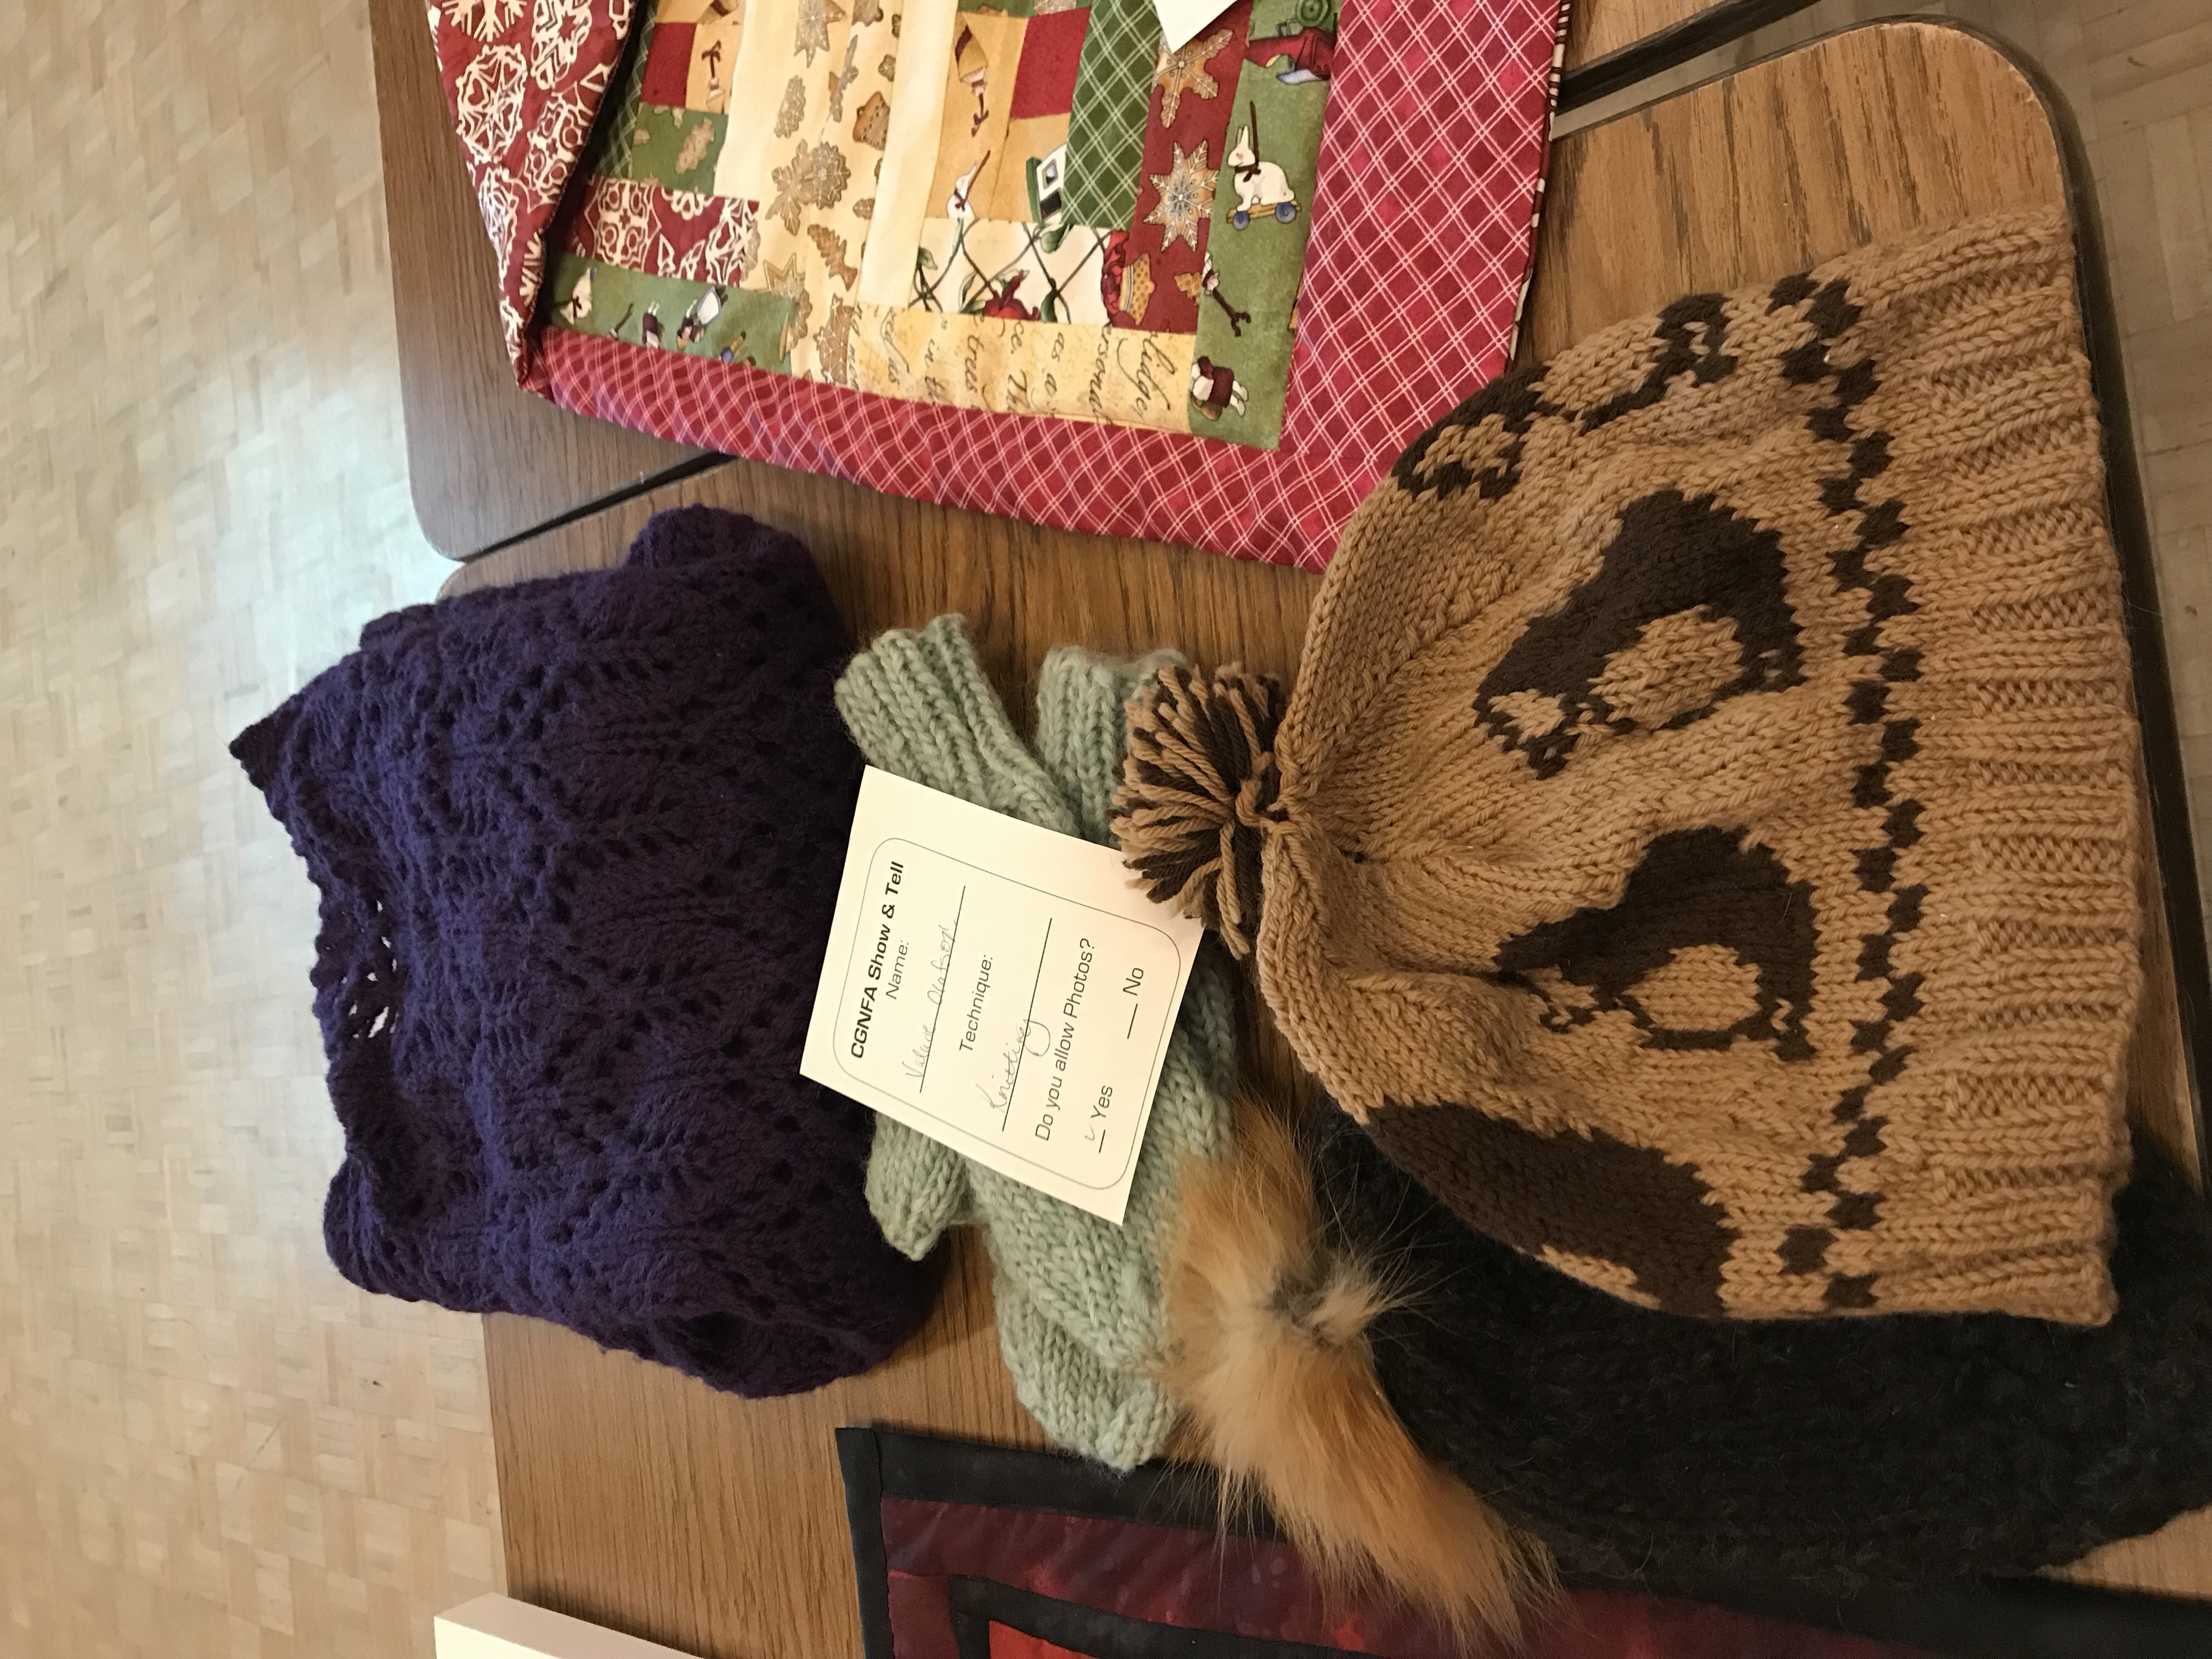 Valarie's knitted items